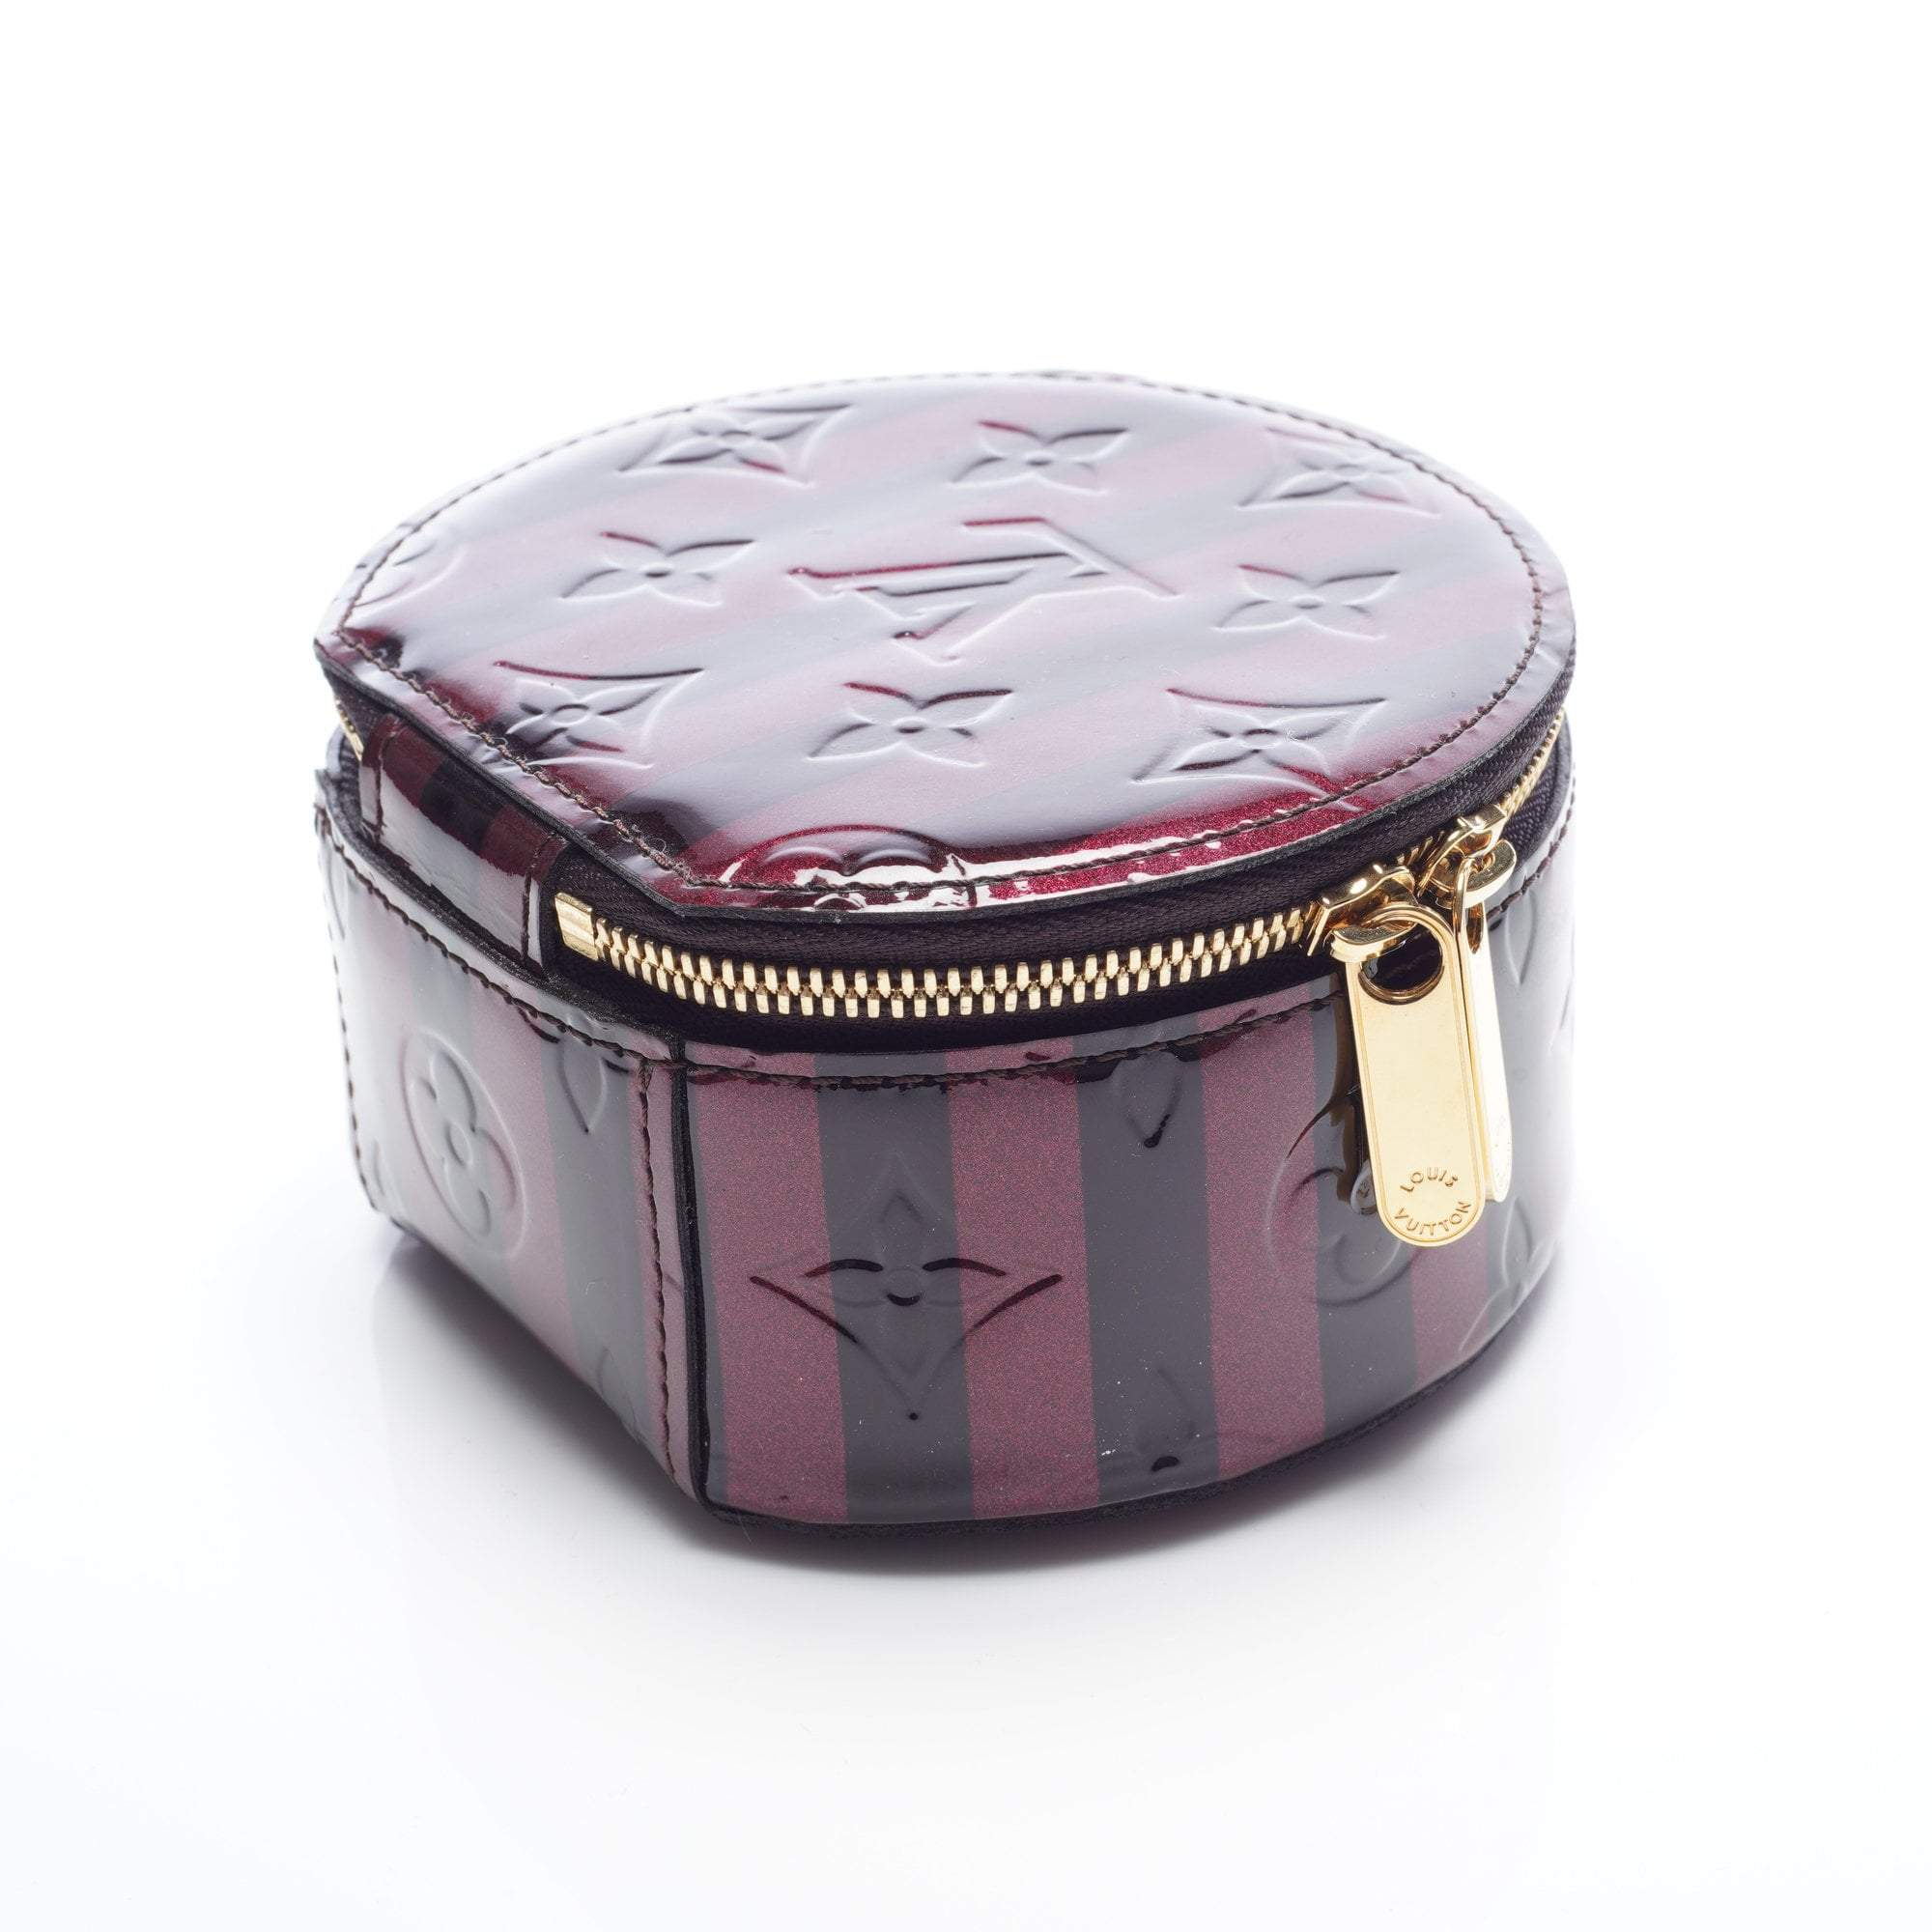 Louis Vuitton Vernis Jewelry Case